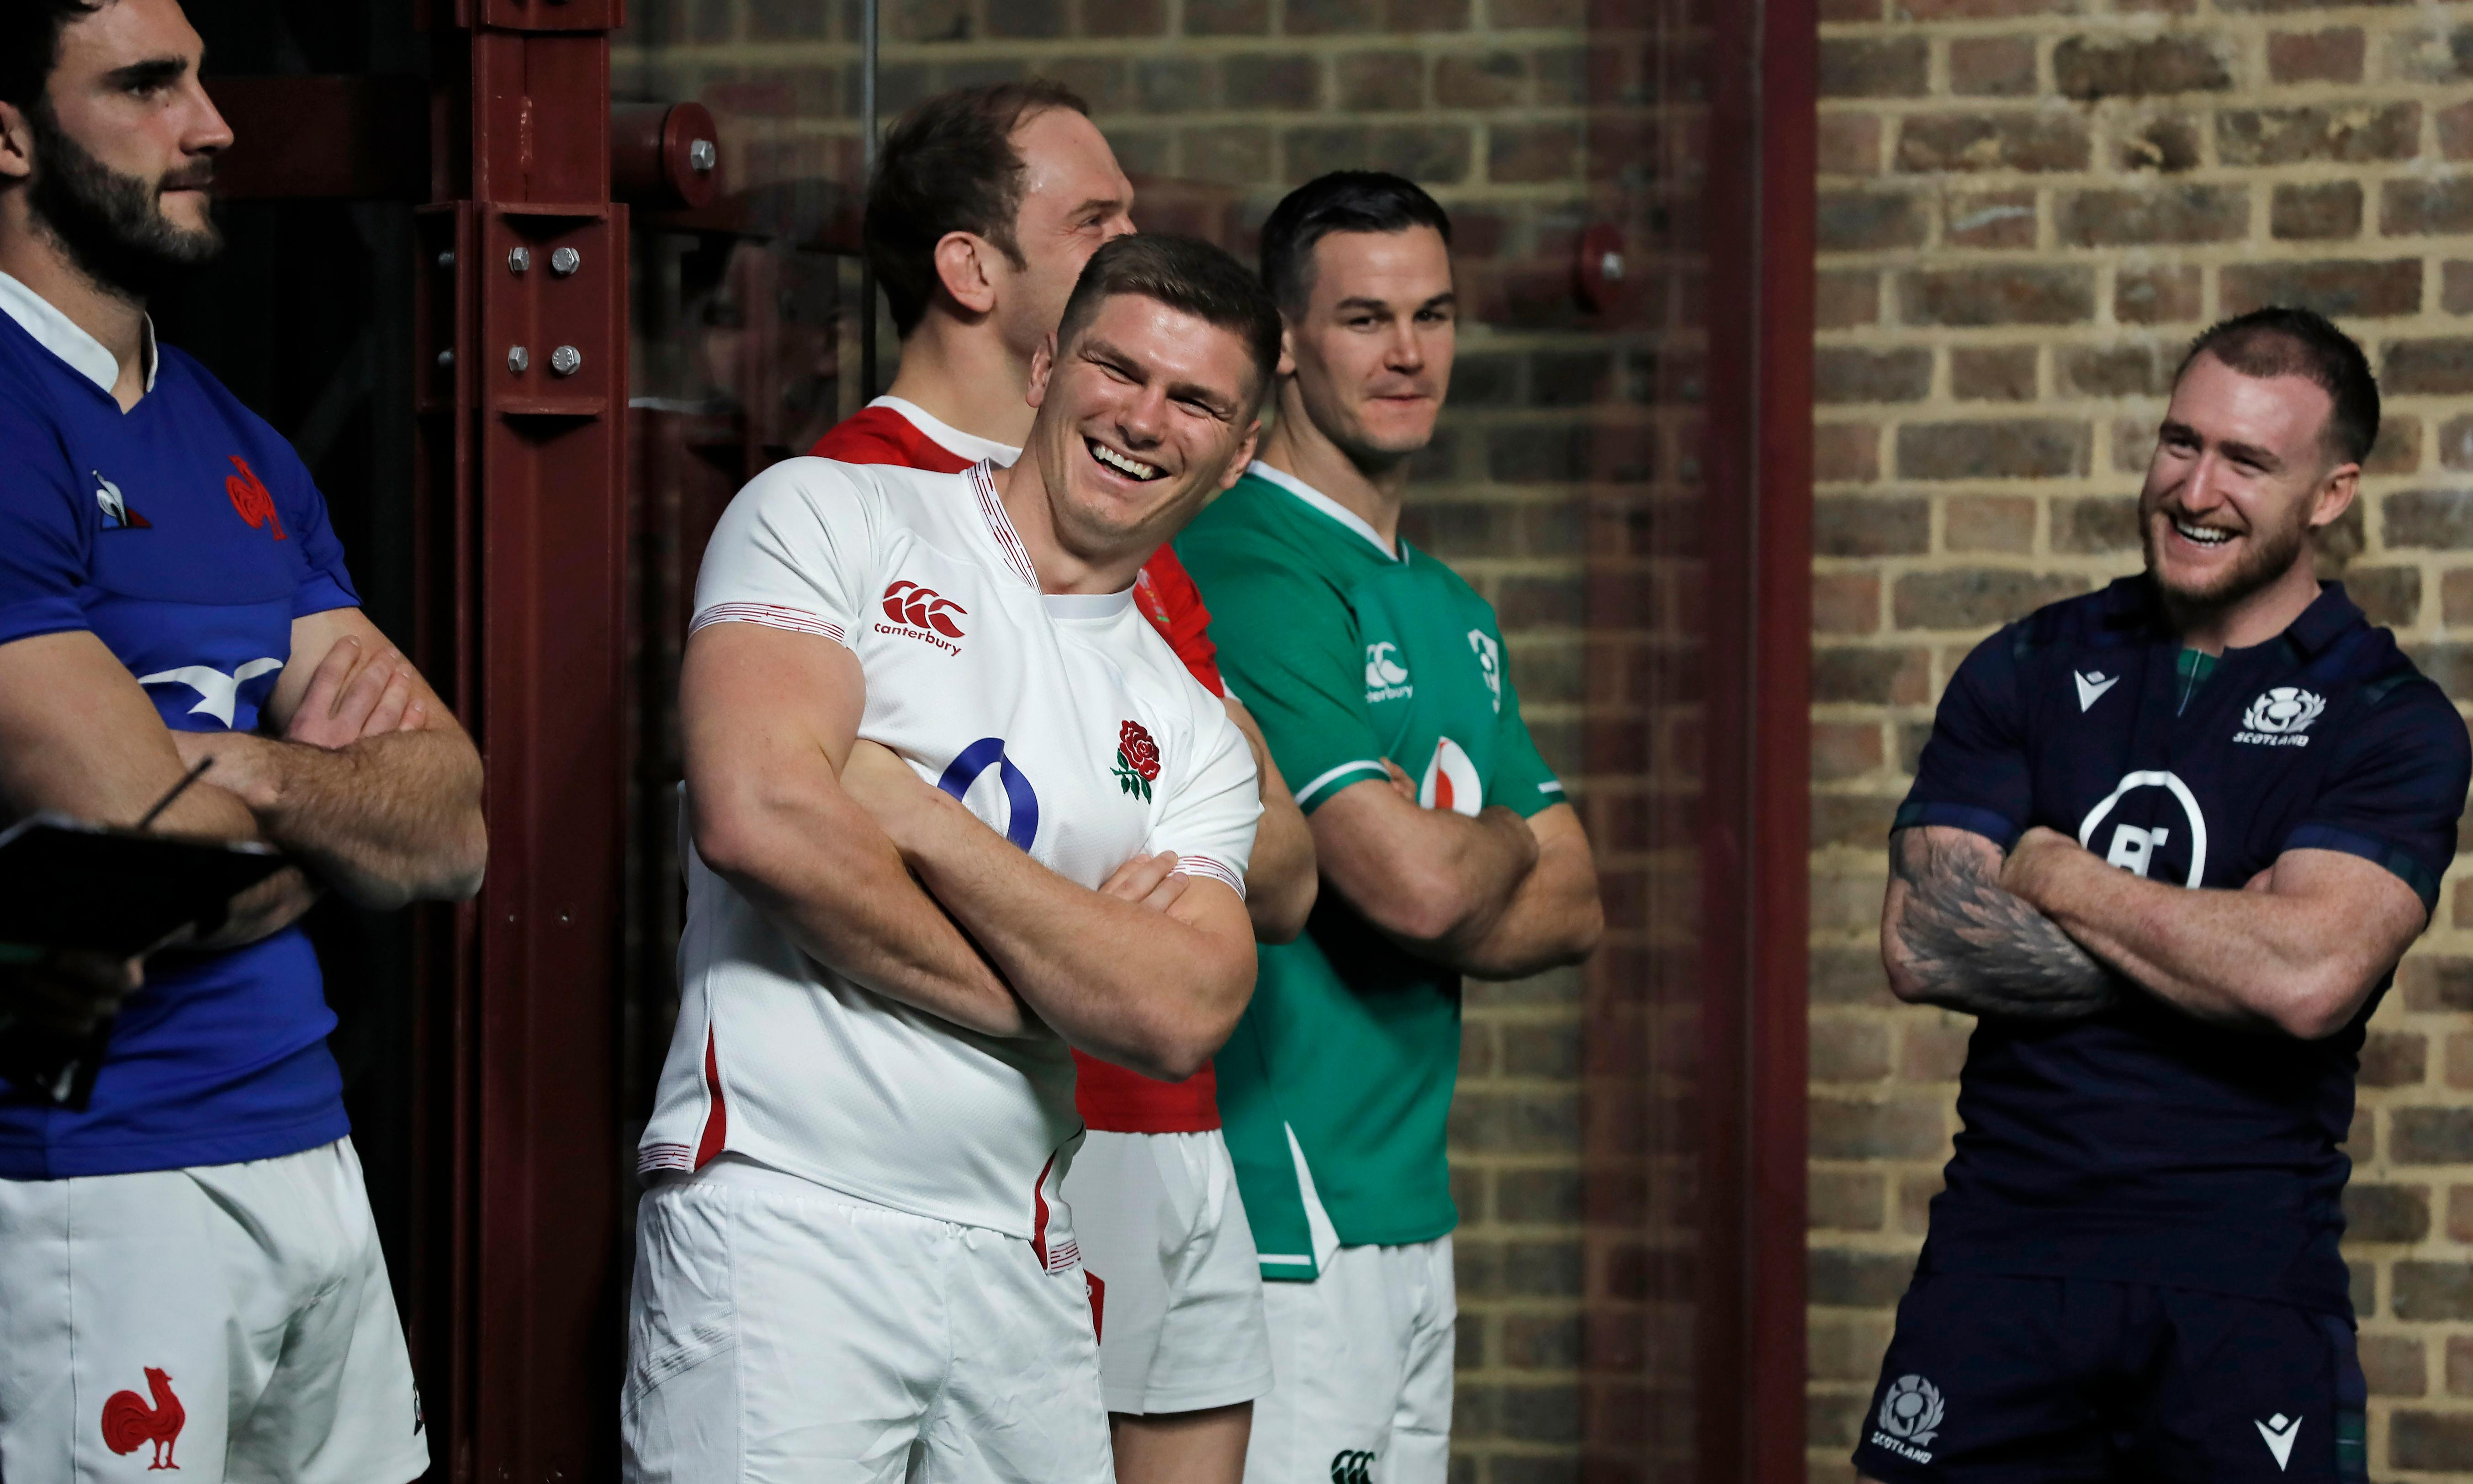 England dogged by domestic woes as Six Nations rivals talk up new eras